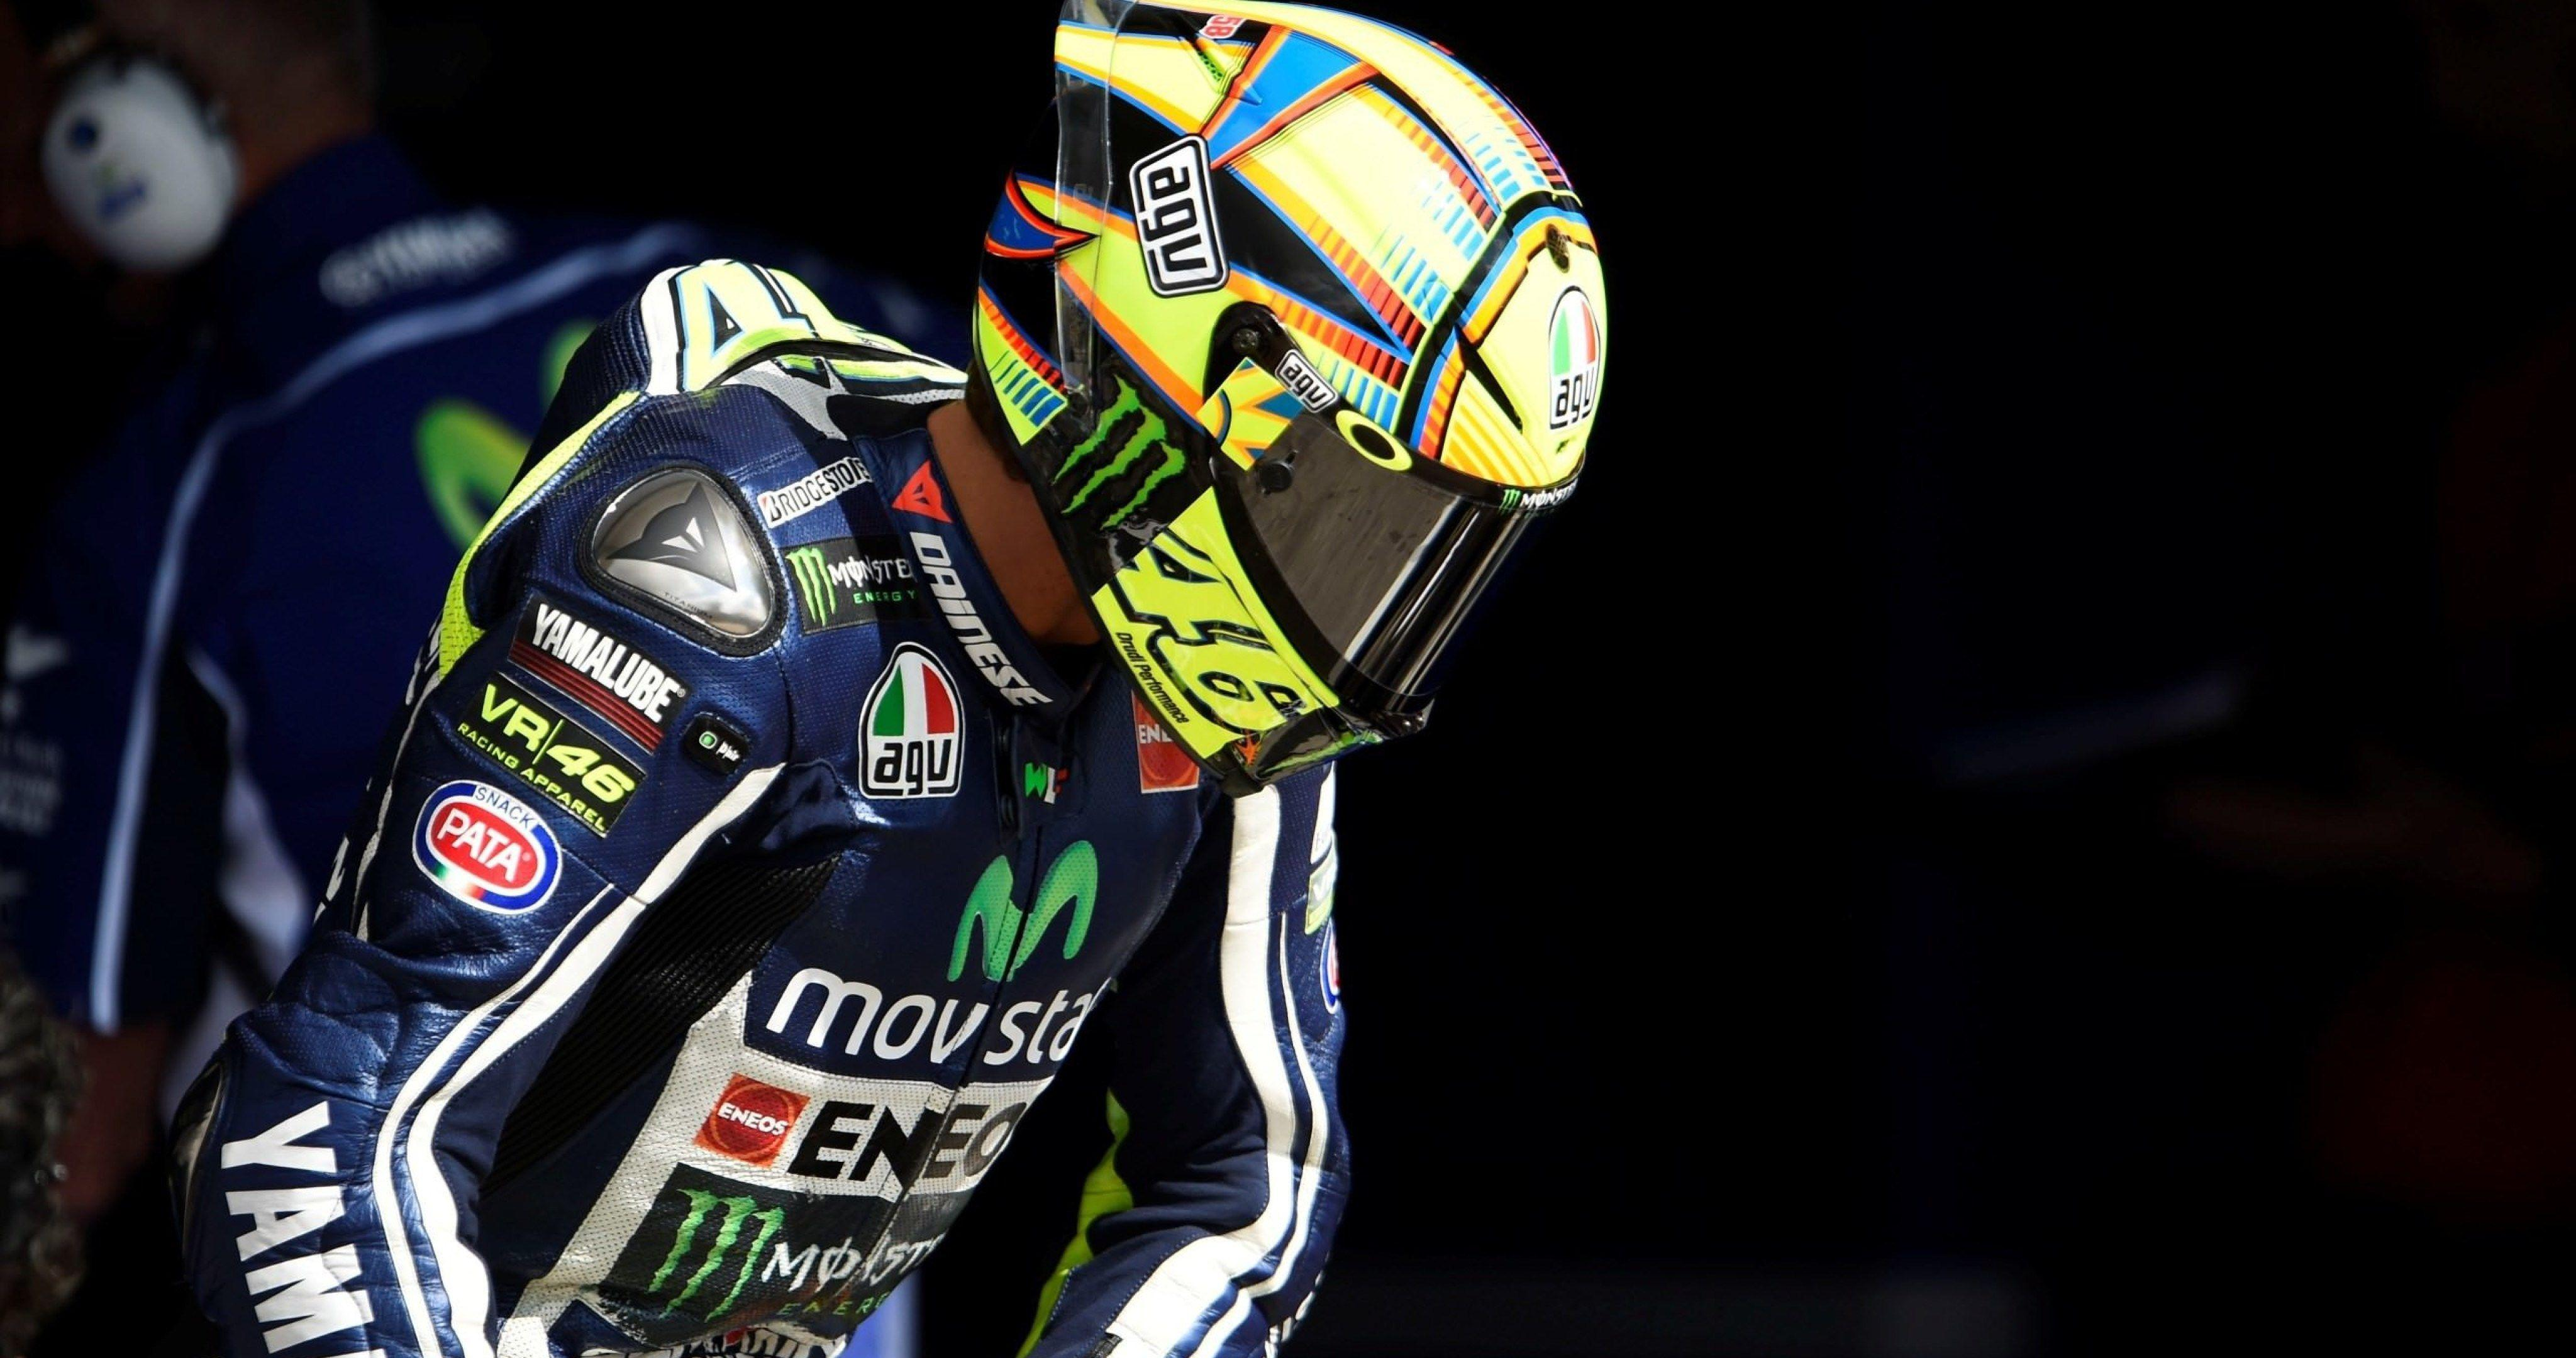 valentino rossi the doctor 4k ultra hd wallpapers